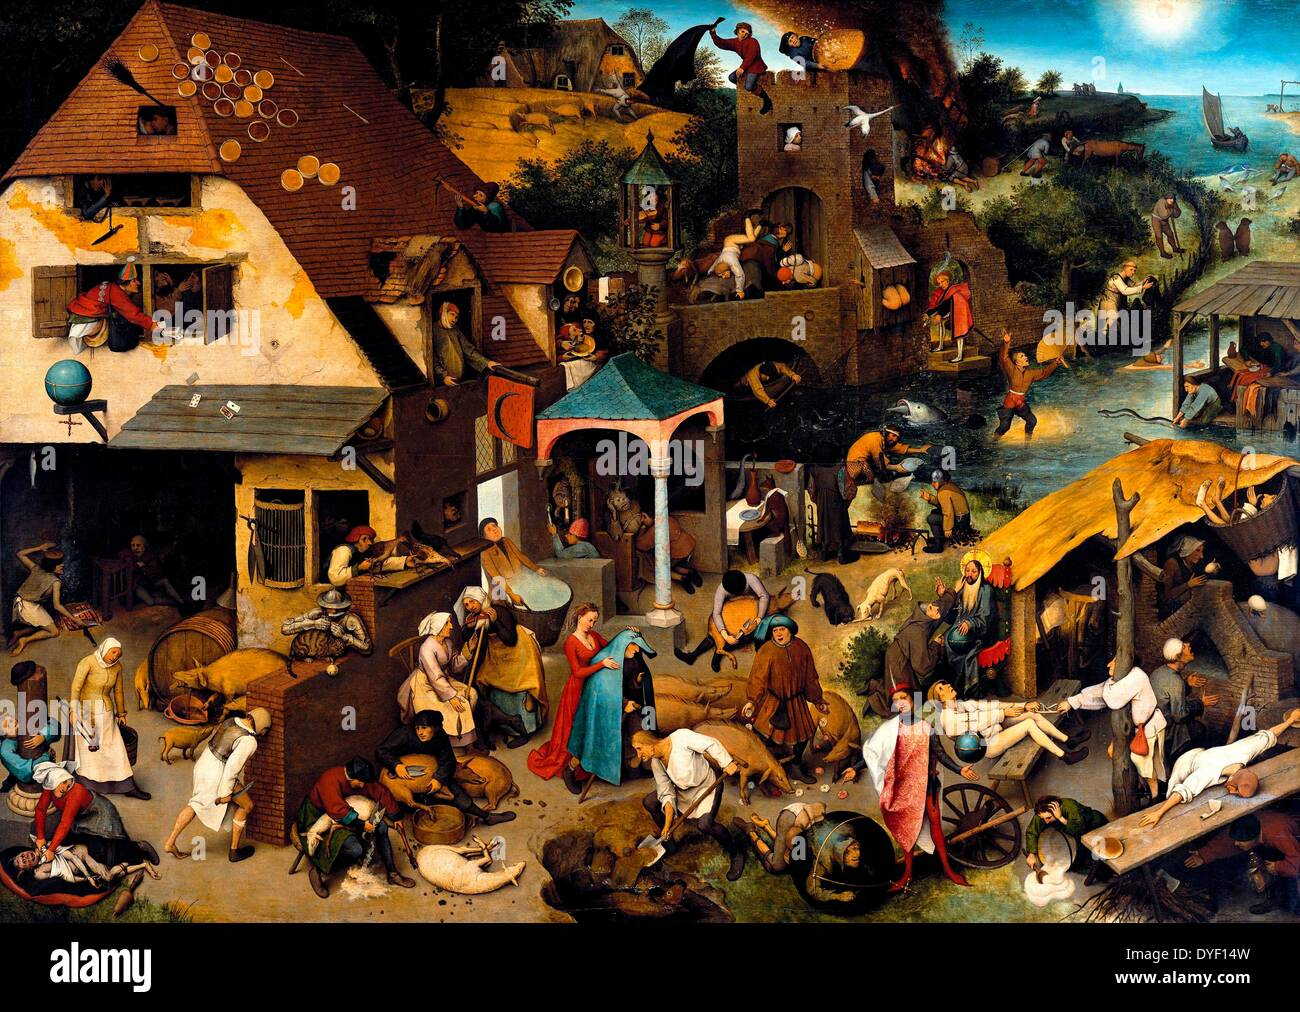 'Netherlandish Proverbs', a  painting by Pieter Bruegel the Elder depicting a land populated with  Dutch/Flemish proverbs. - Stock Image